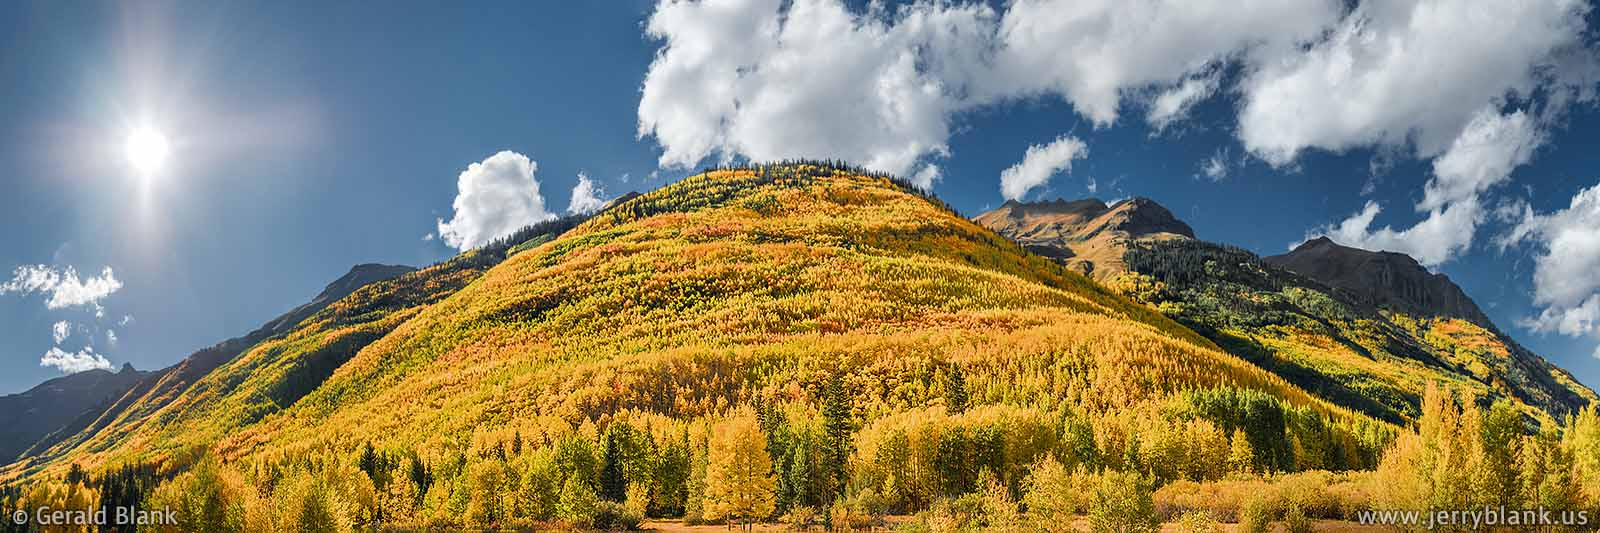 #43766 - An amazing panorama of autumn color on the foothills of Hayden Mountain in Colorado, as seen from US Hwy. 550 south of Ouray - photo by Jerry Blank